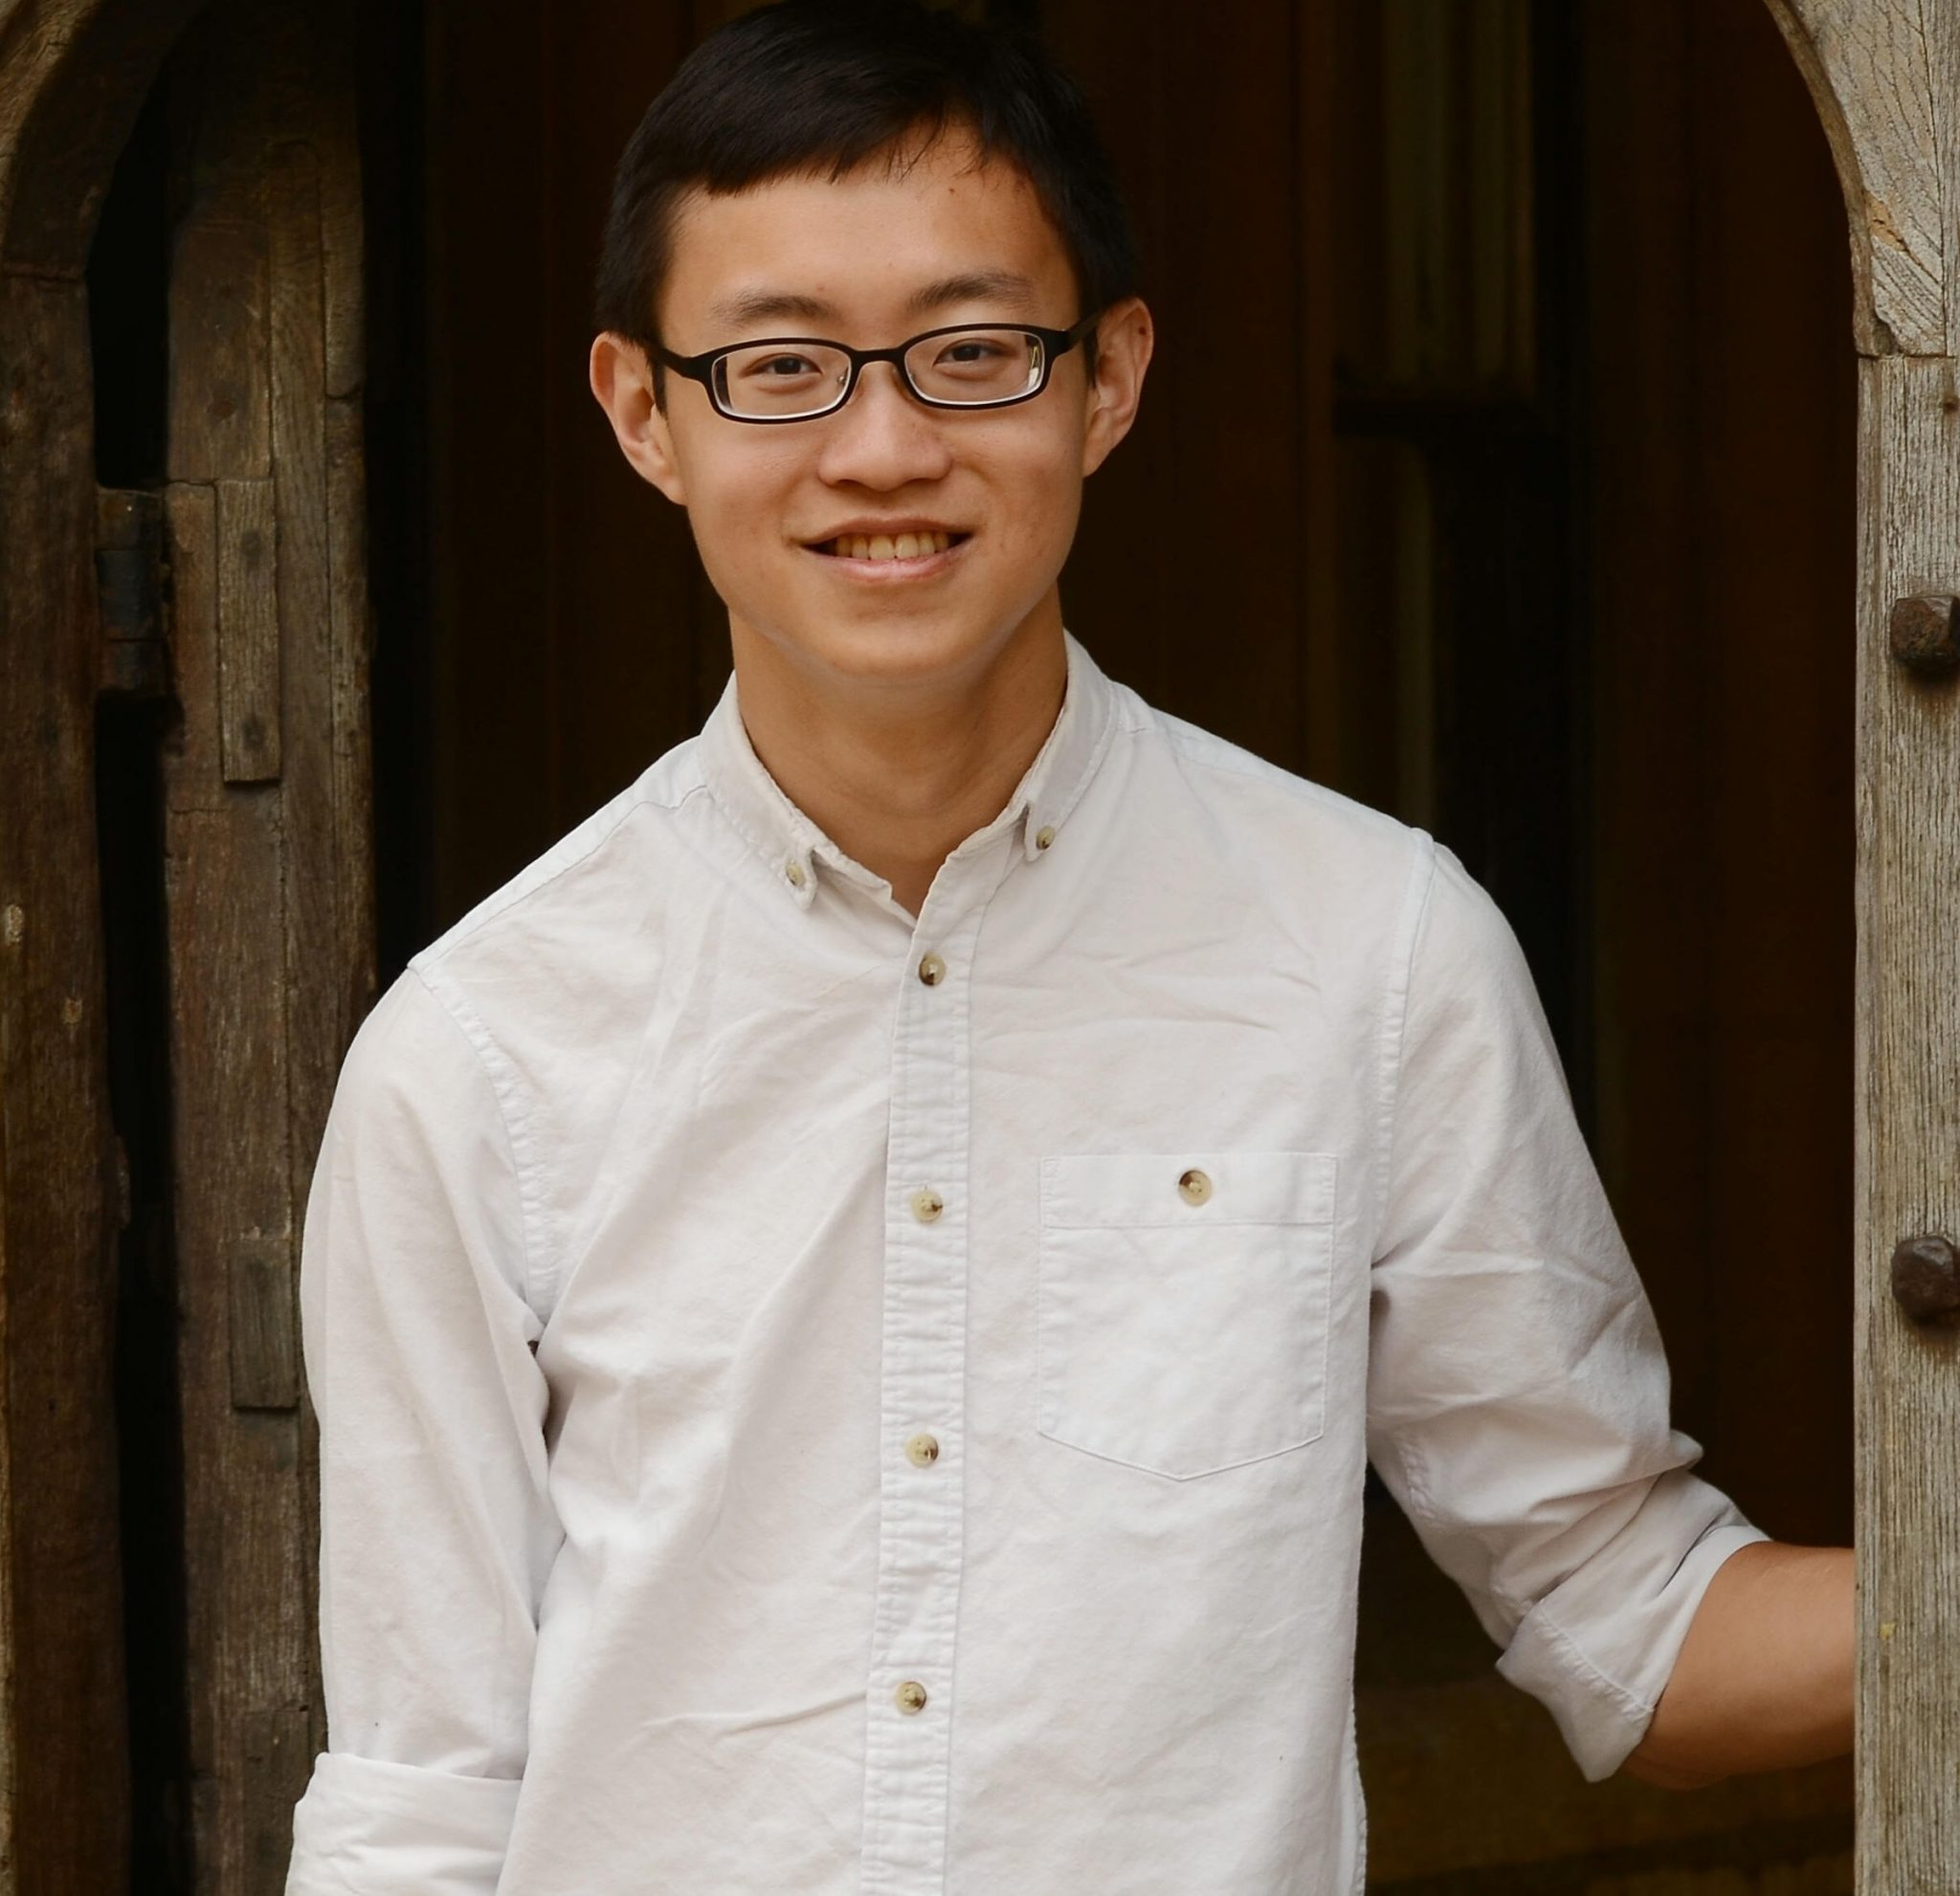 Award-winning student poet Theophilus Kwek discusses the ocean, identity, and poetry